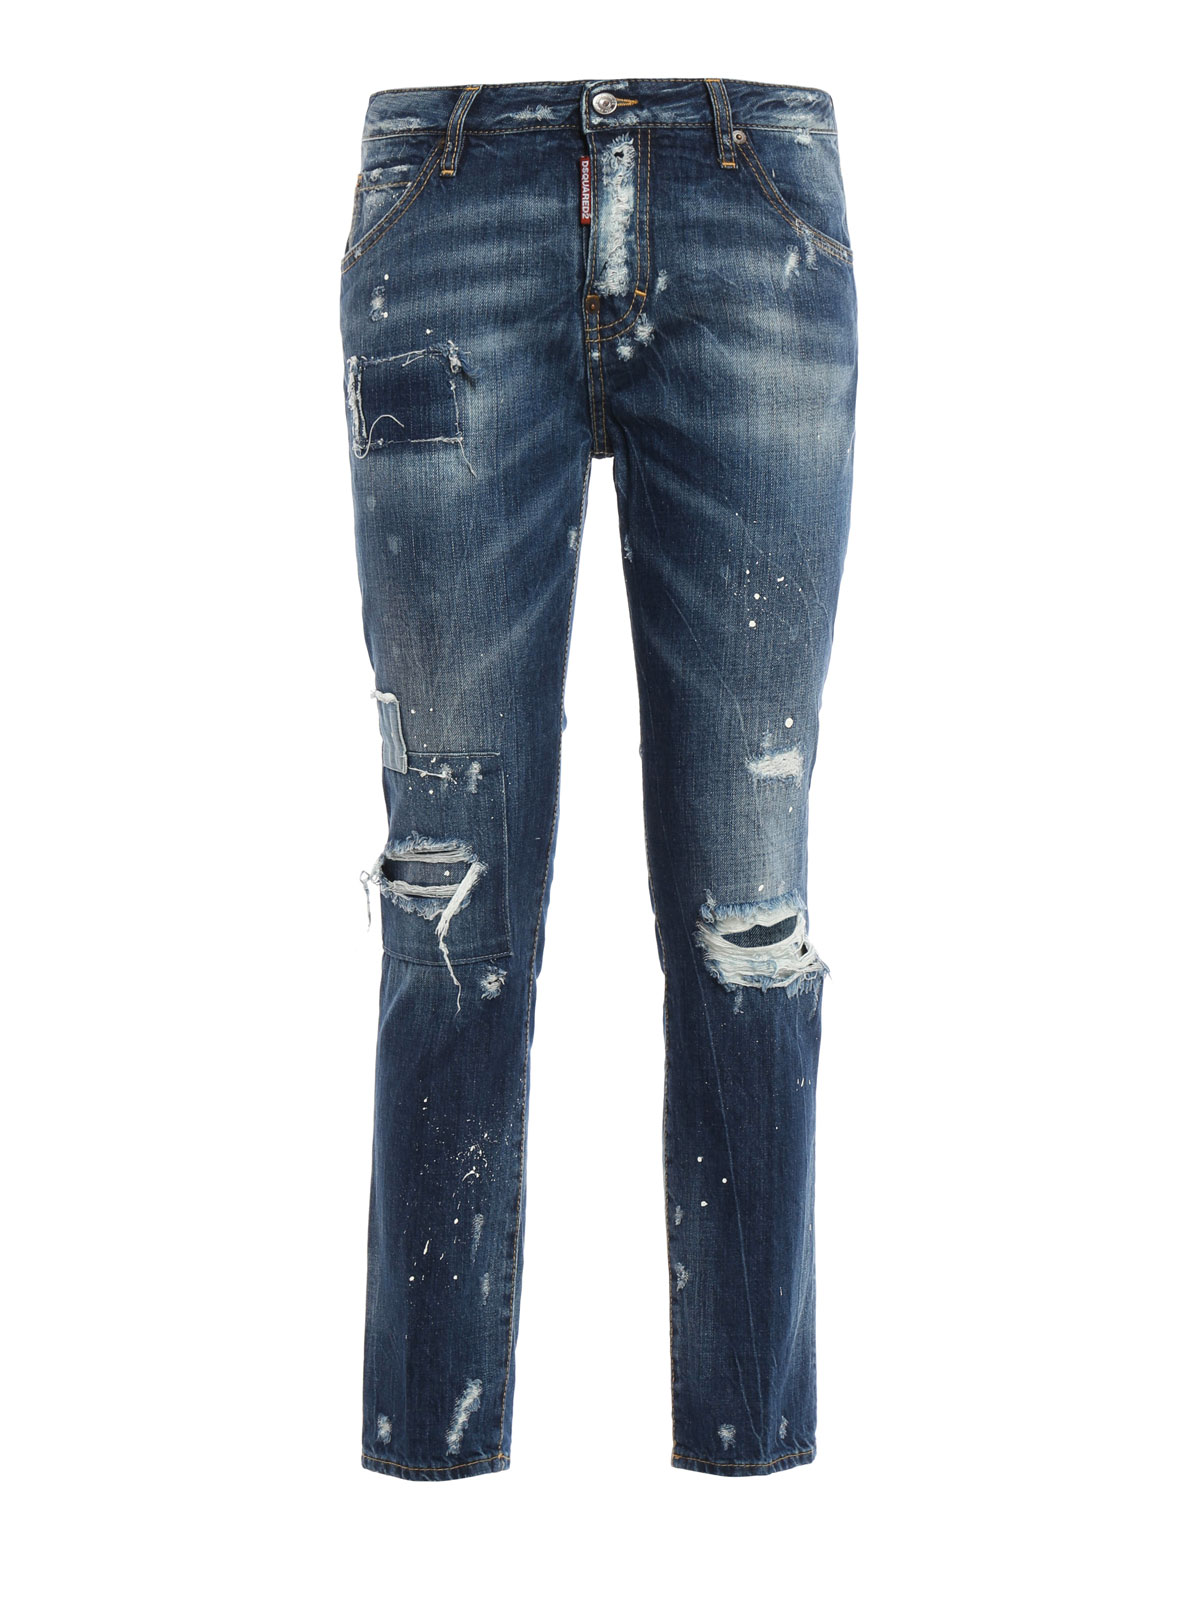 Grey stretch cotton 'Cool Girl' jeans from DSQUARED2 featuring a front button fastening, a waistband with belt loops, a five pocket design, distressed effects, a bleached effect and an ankle length. This item may not be on sale in France, UK, Italy, Belgium and 0549sahibi.tk: $